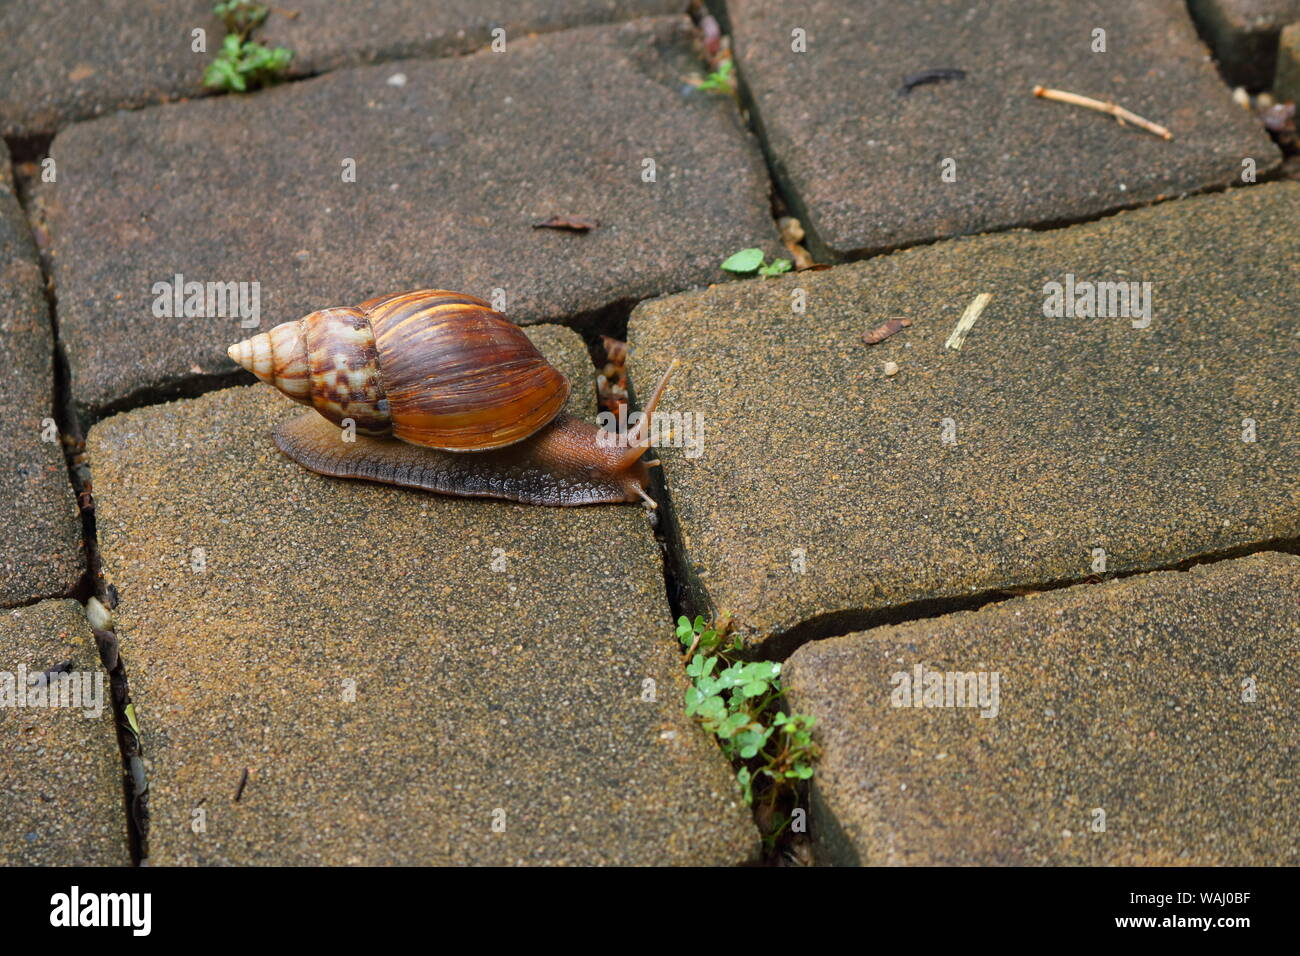 Closeup of a snail crawling on pavement, slow life concept Stock Photo